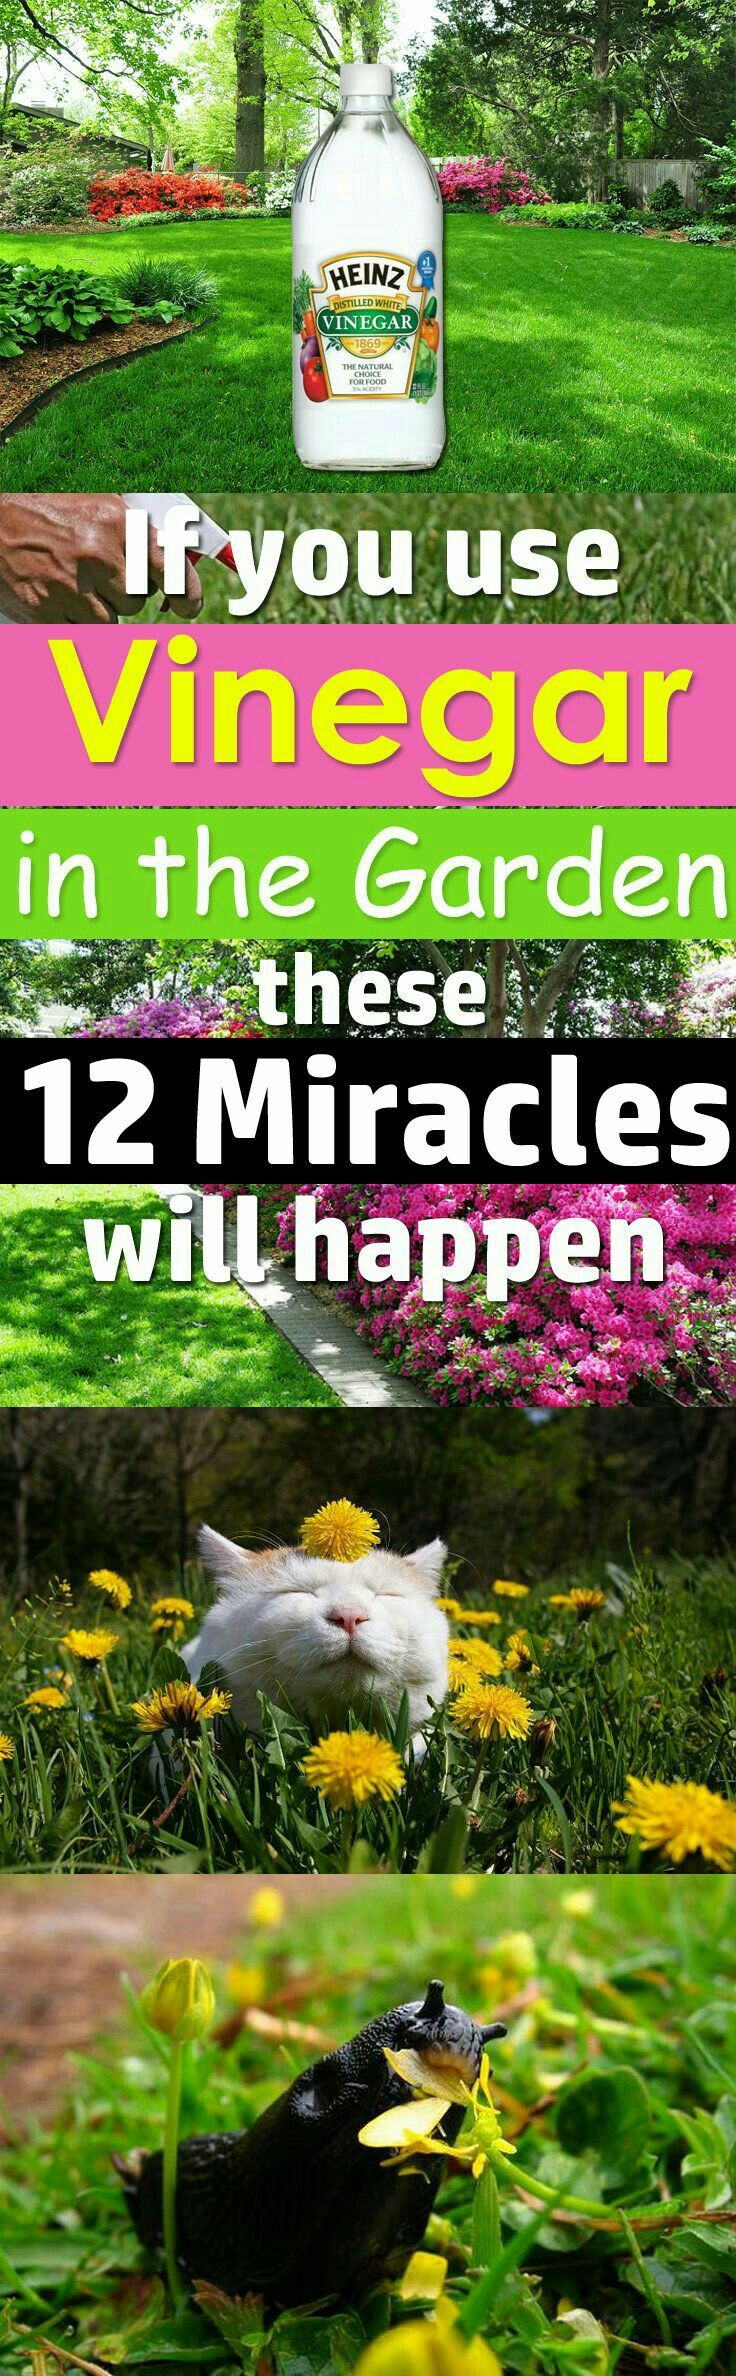 Miracle to take care of the garden for pollinators to pollinate something.